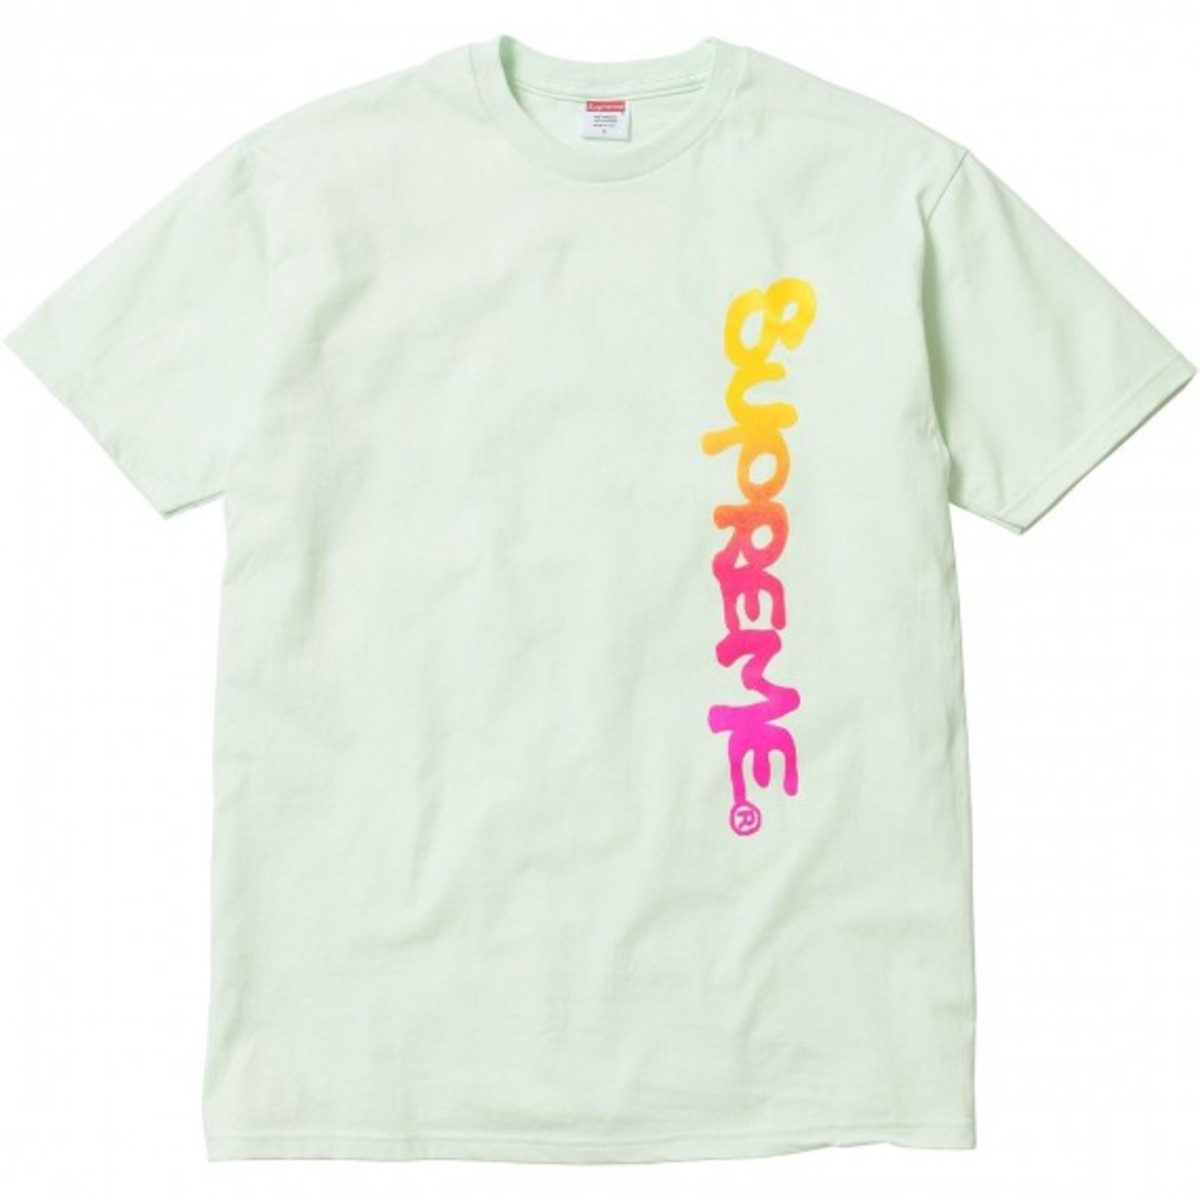 lance-mountain-supreme-logo-tee-05